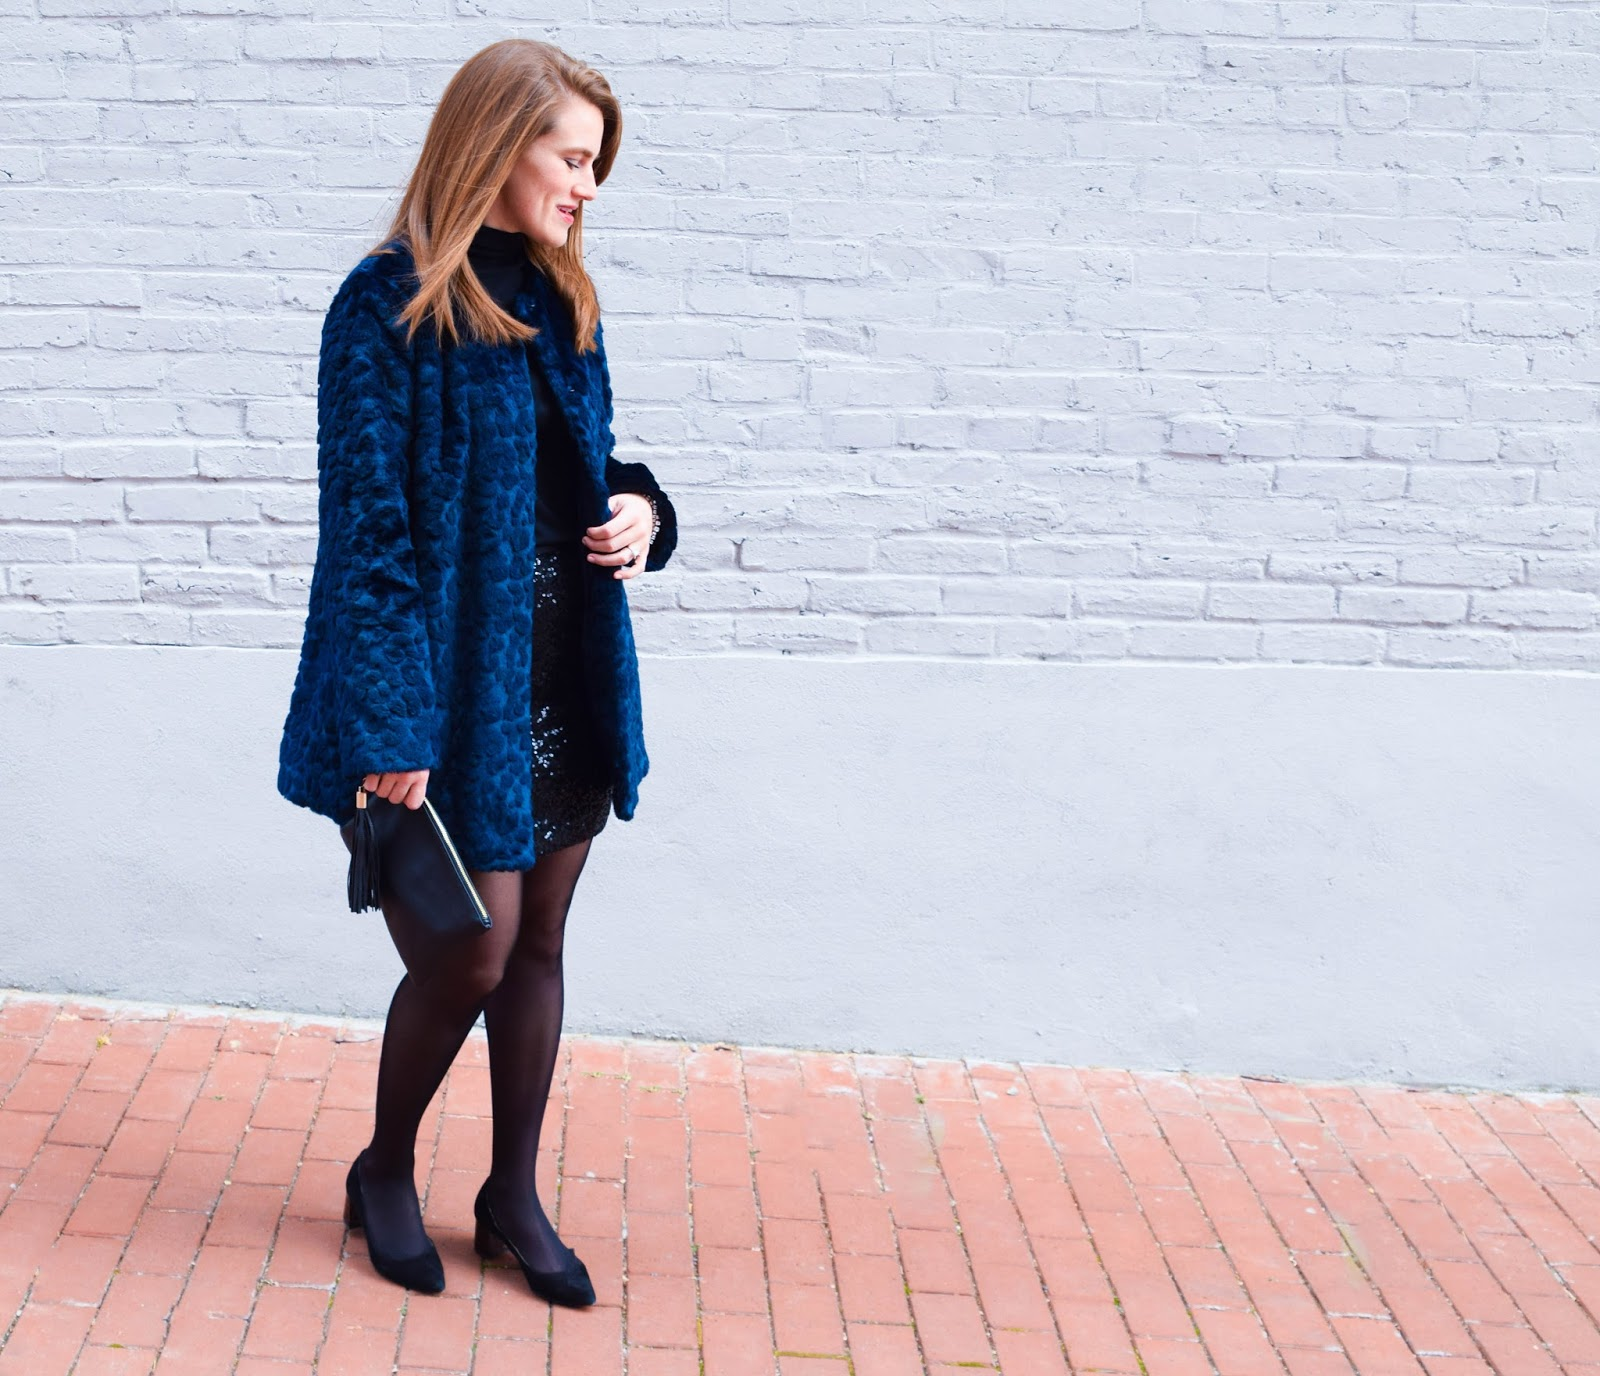 An Outfit in Navy and Black